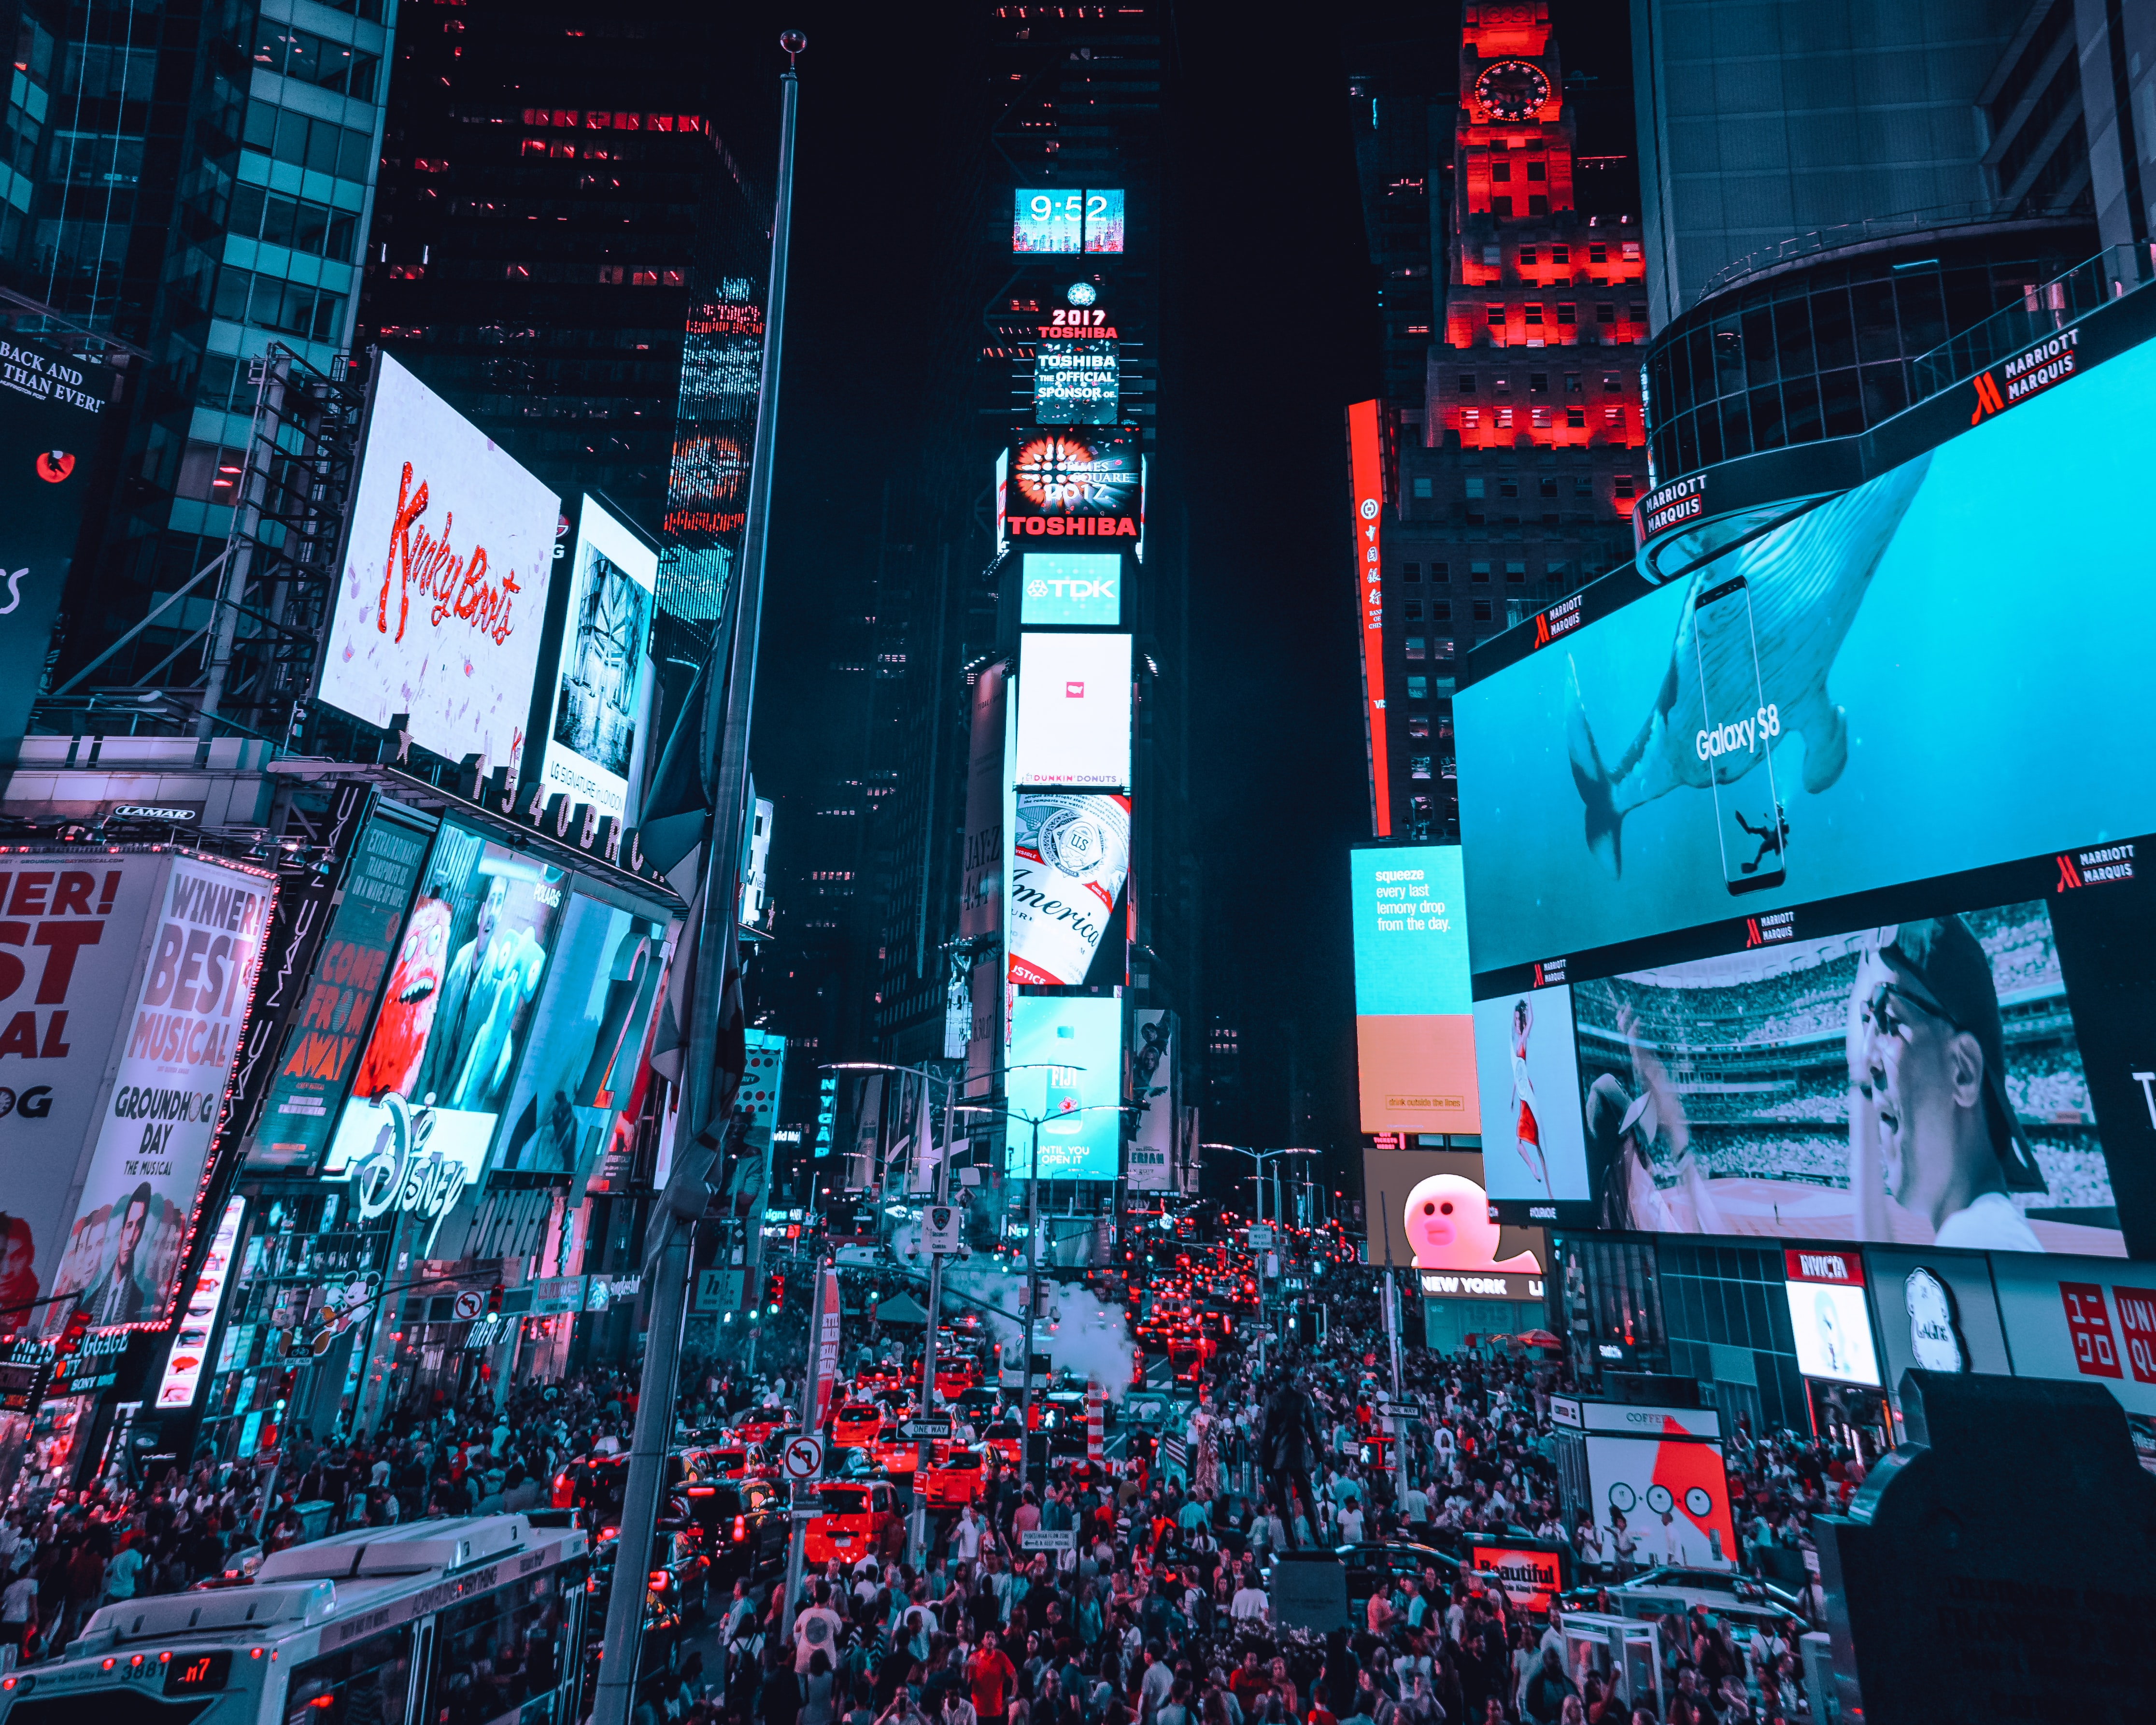 Time Square, New York during night time